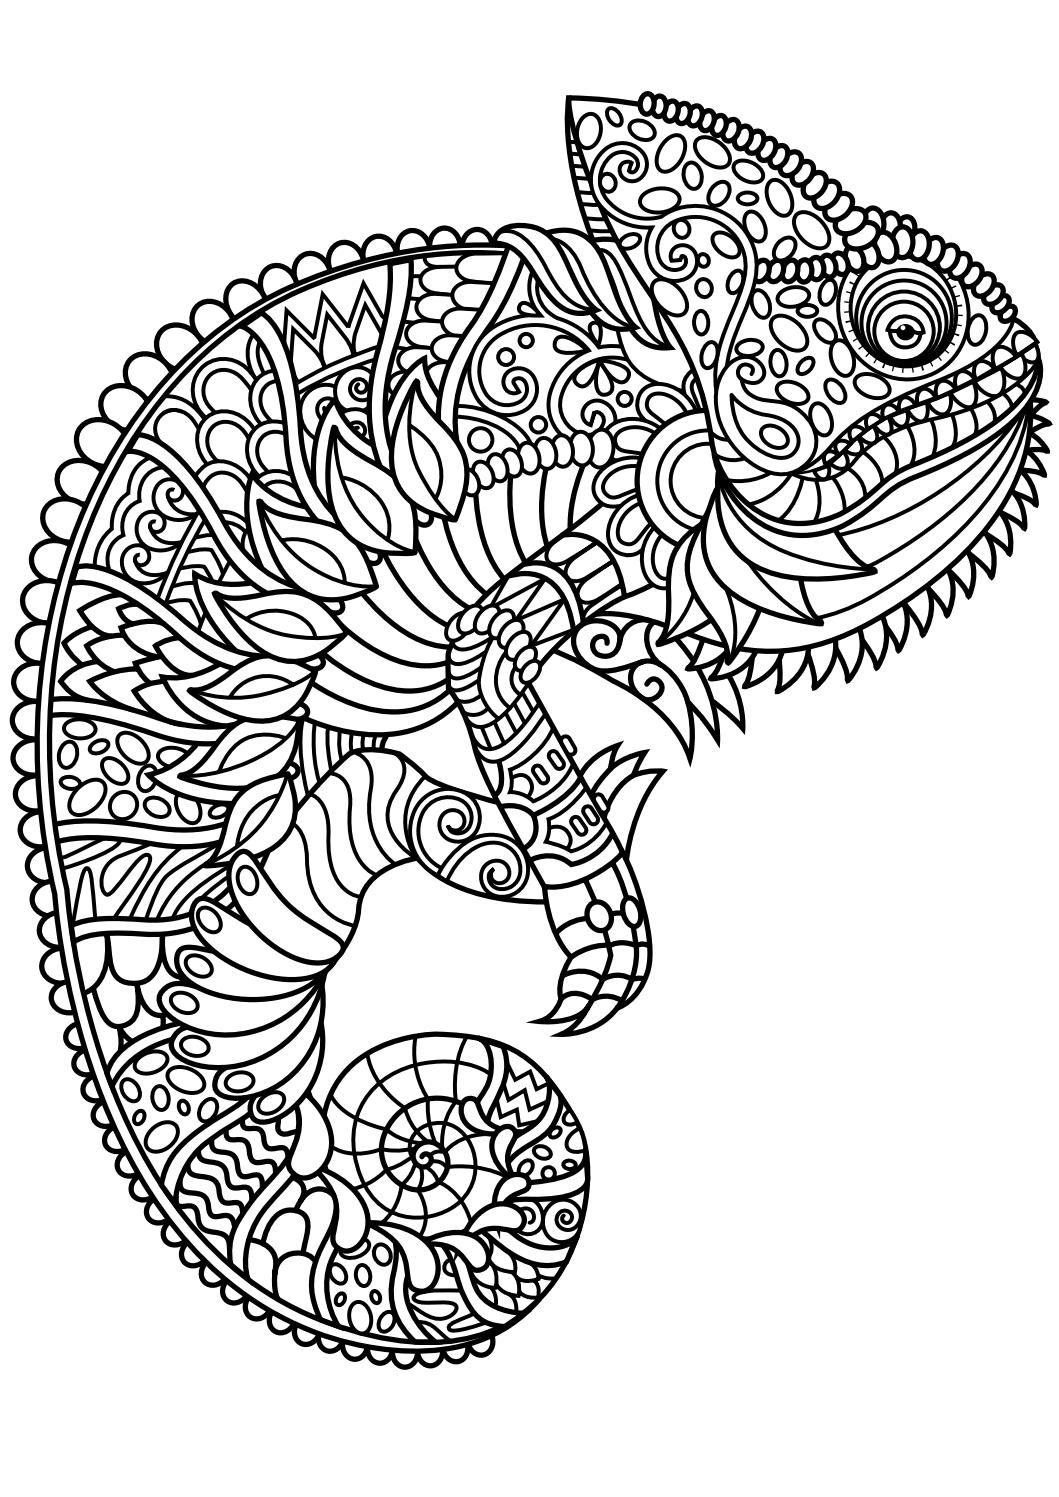 Animal Mandala Coloring Pages Pdf